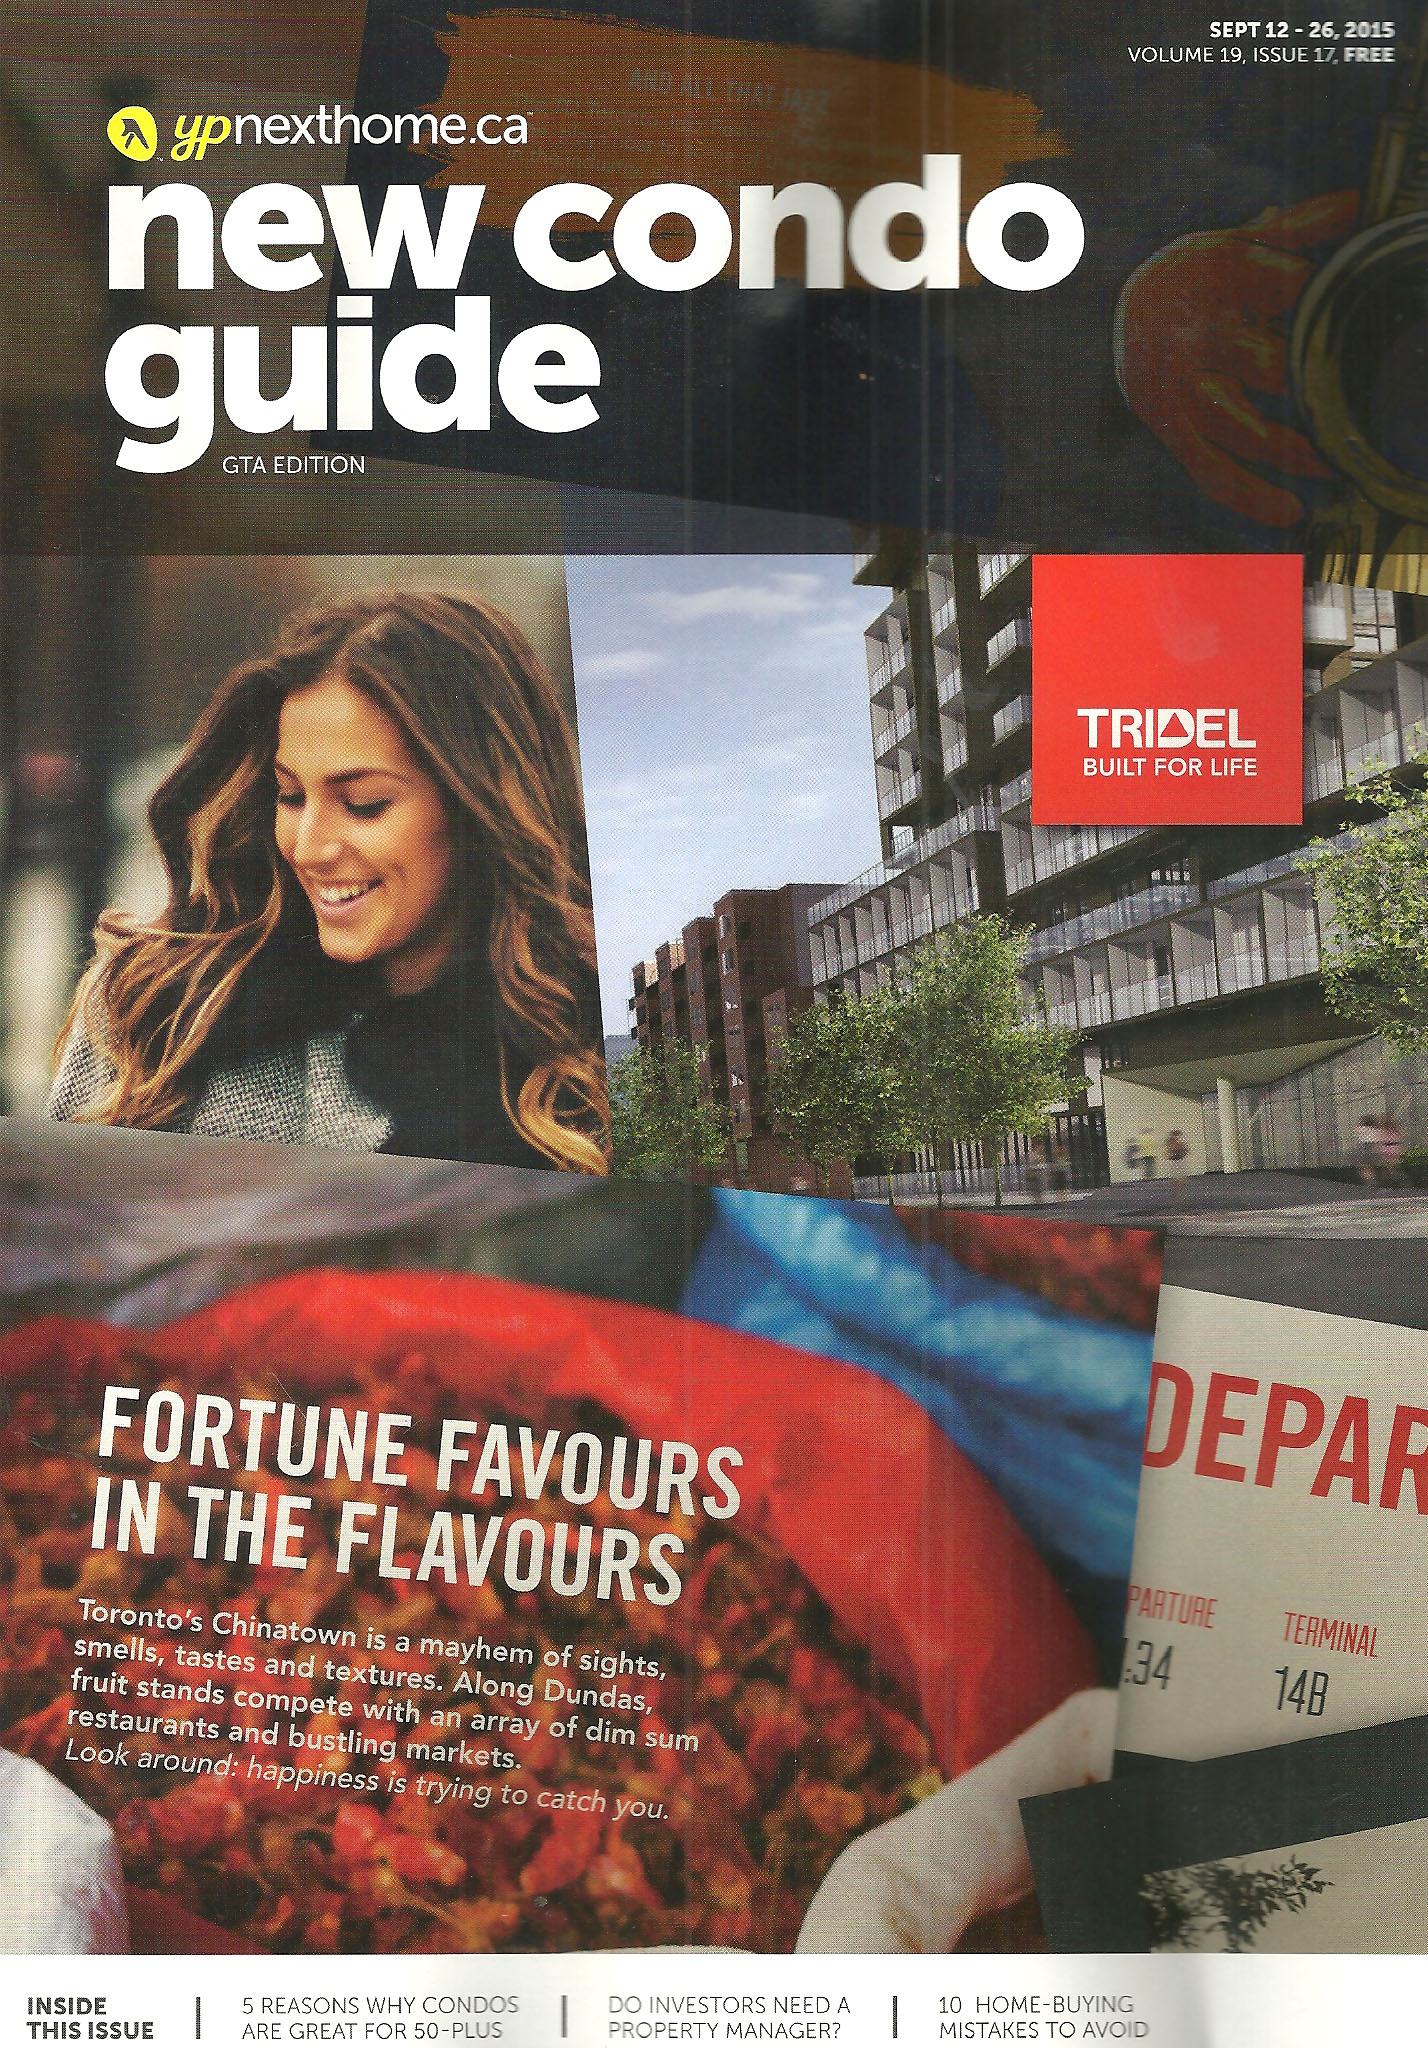 New Condo Guide GTA September 12-26, 2015 Cover.jpg